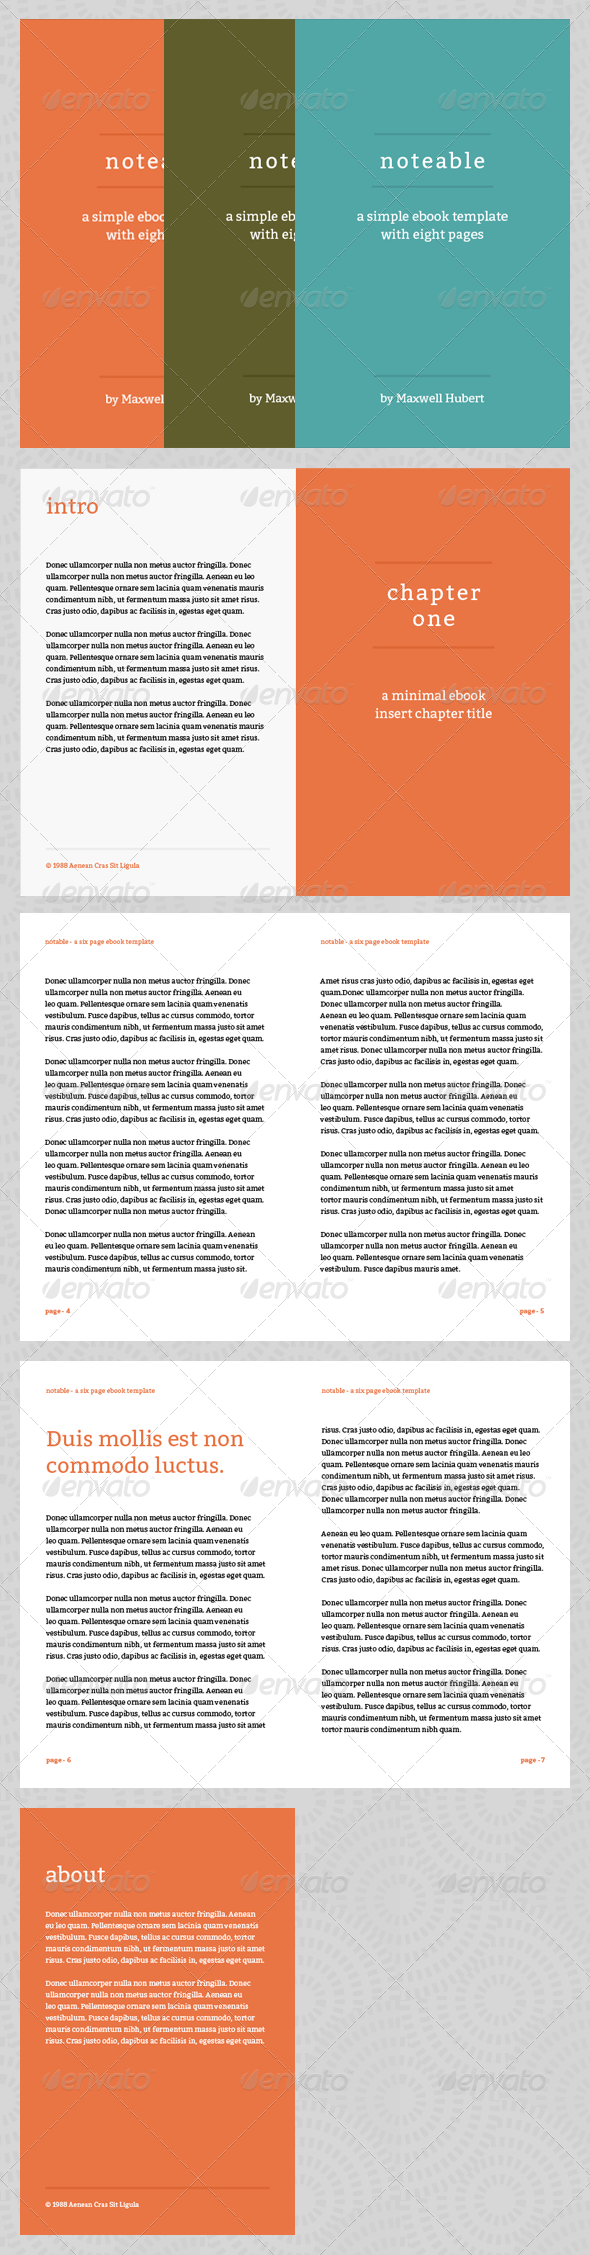 Notable - eBook Template or Print Book - Miscellaneous Print Templates